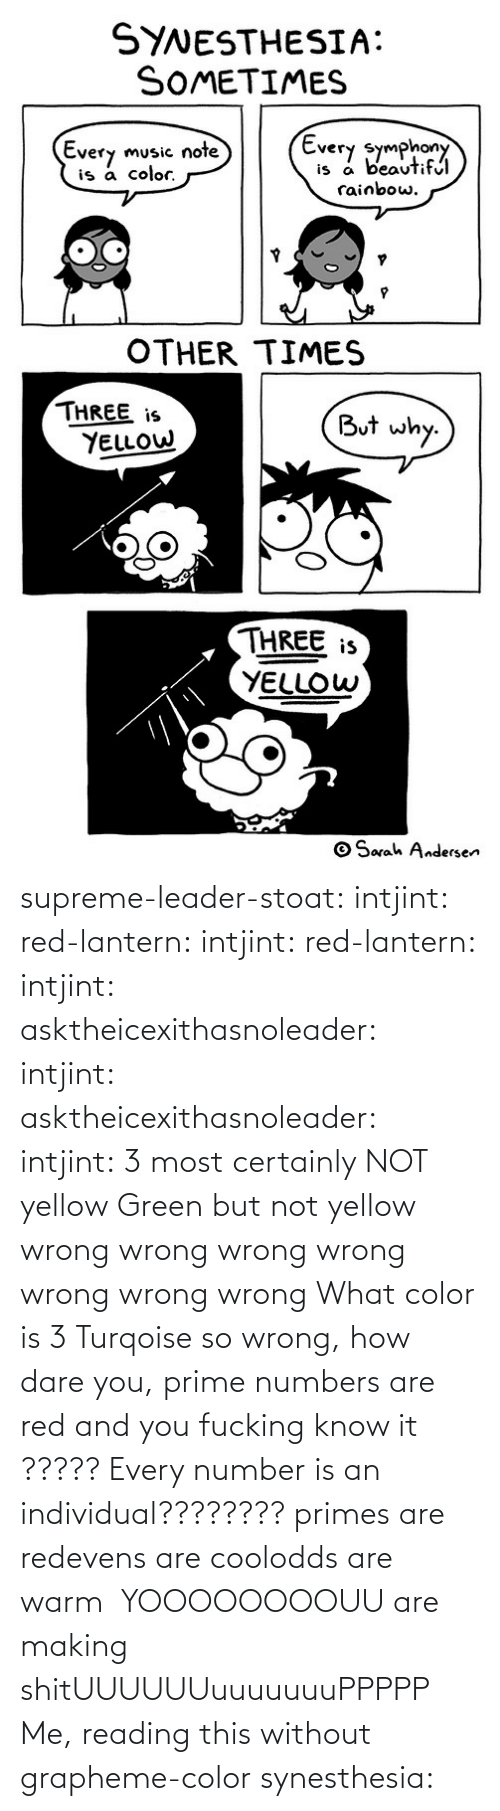 yellow: supreme-leader-stoat: intjint:  red-lantern:  intjint:  red-lantern:  intjint:  asktheicexithasnoleader:  intjint:   asktheicexithasnoleader:  intjint:  3 most certainly NOT yellow   Green but not yellow  wrong wrong wrong wrong wrong wrong wrong    What color is 3  Turqoise  so wrong, how dare you, prime numbers are red and you fucking know it   ????? Every number is an individual????????  primes are redevens are coolodds are warm   YOOOOOOOOUU are making shitUUUUUUuuuuuuuPPPPP  Me, reading this without grapheme-color synesthesia: